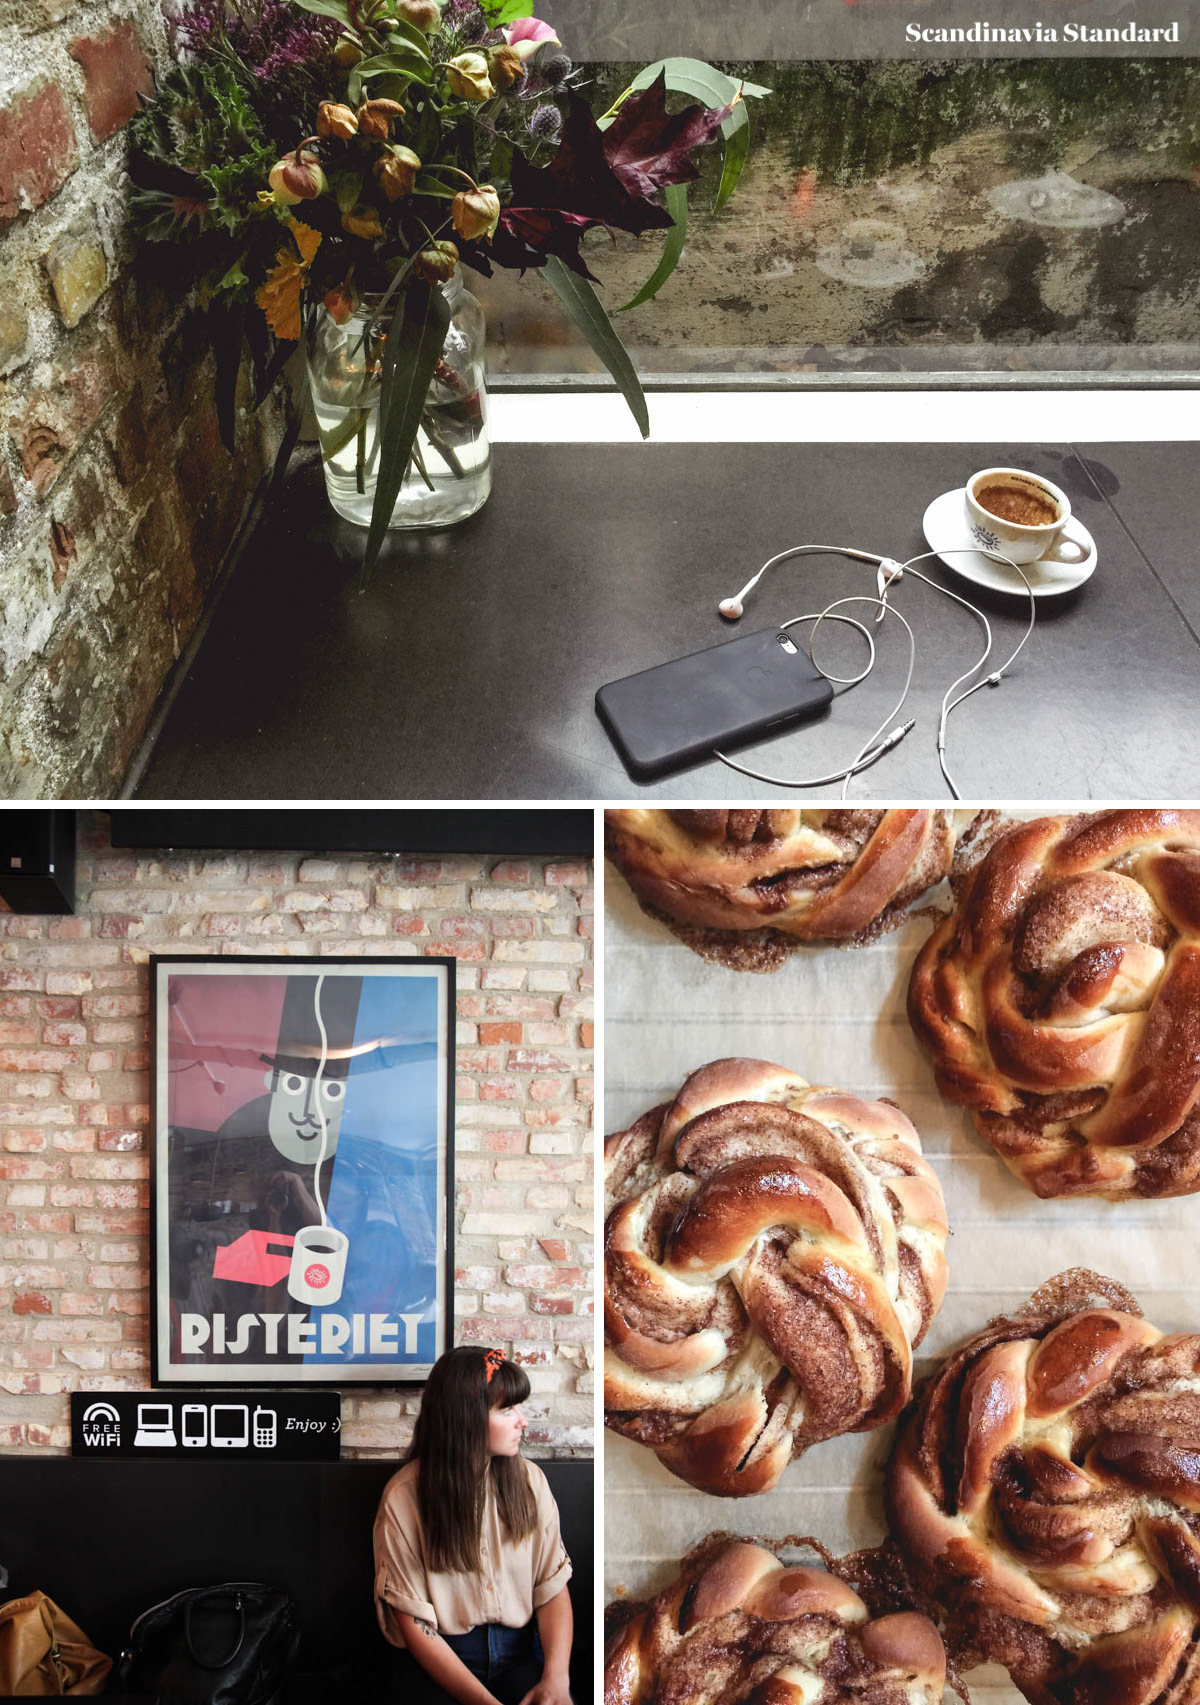 Best Coffee Shops - Risteriet Collage | Scandinavia Standard